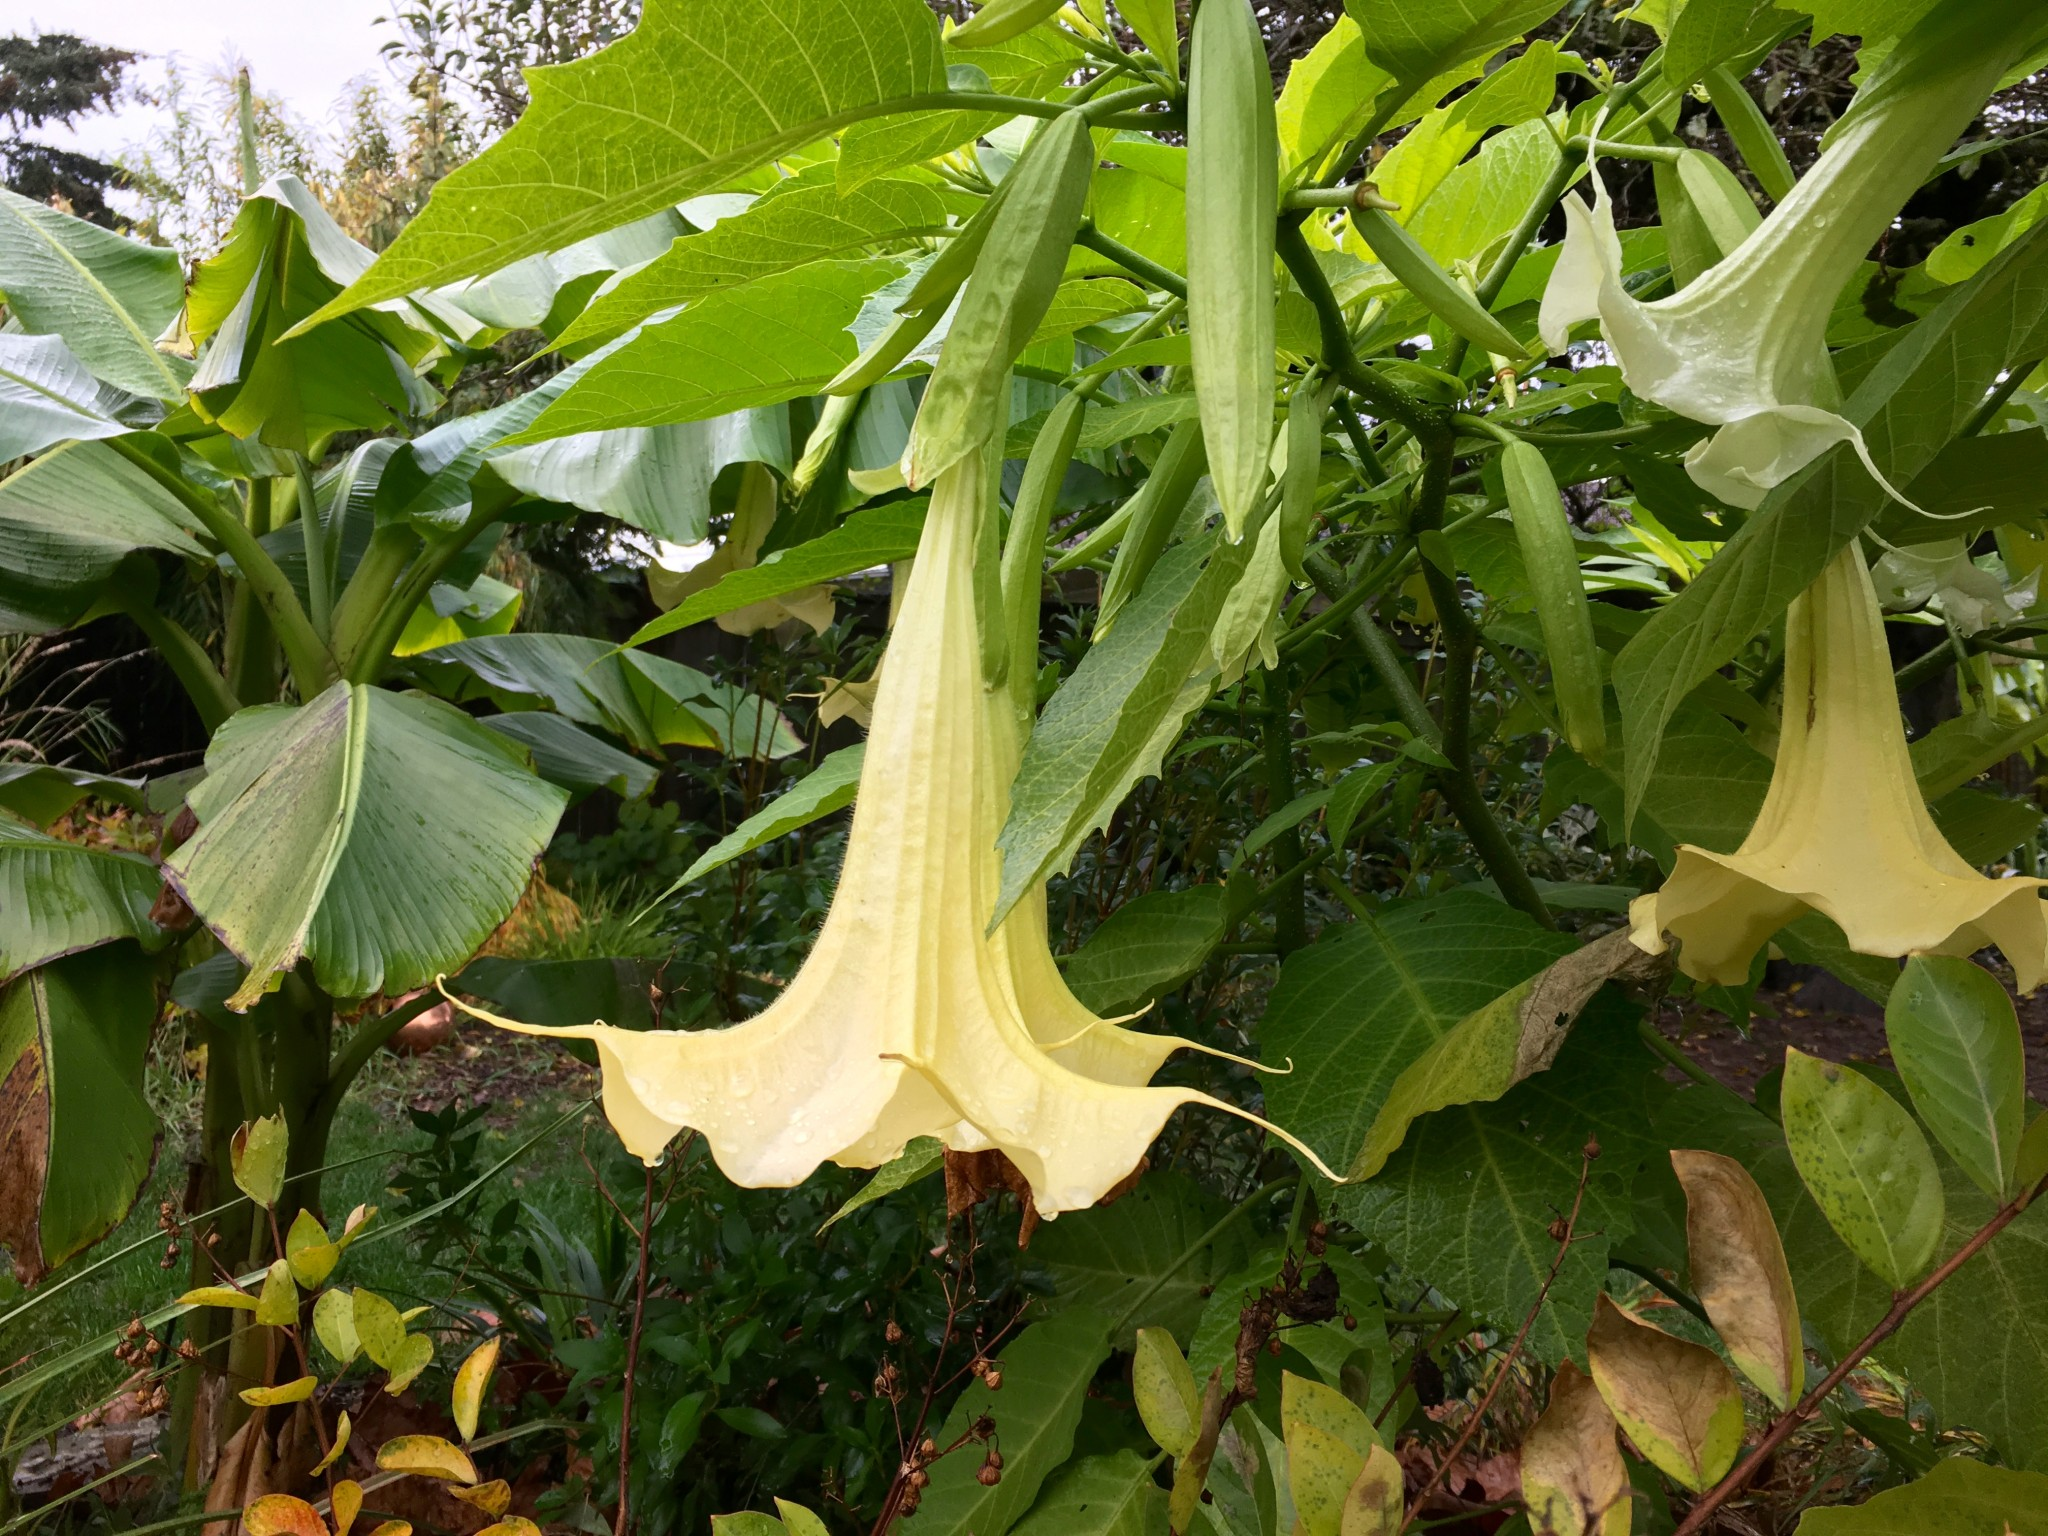 Brugmansia 'Charles Grimaldi' and Brugmansia 'Single White' still singing their hearts out.